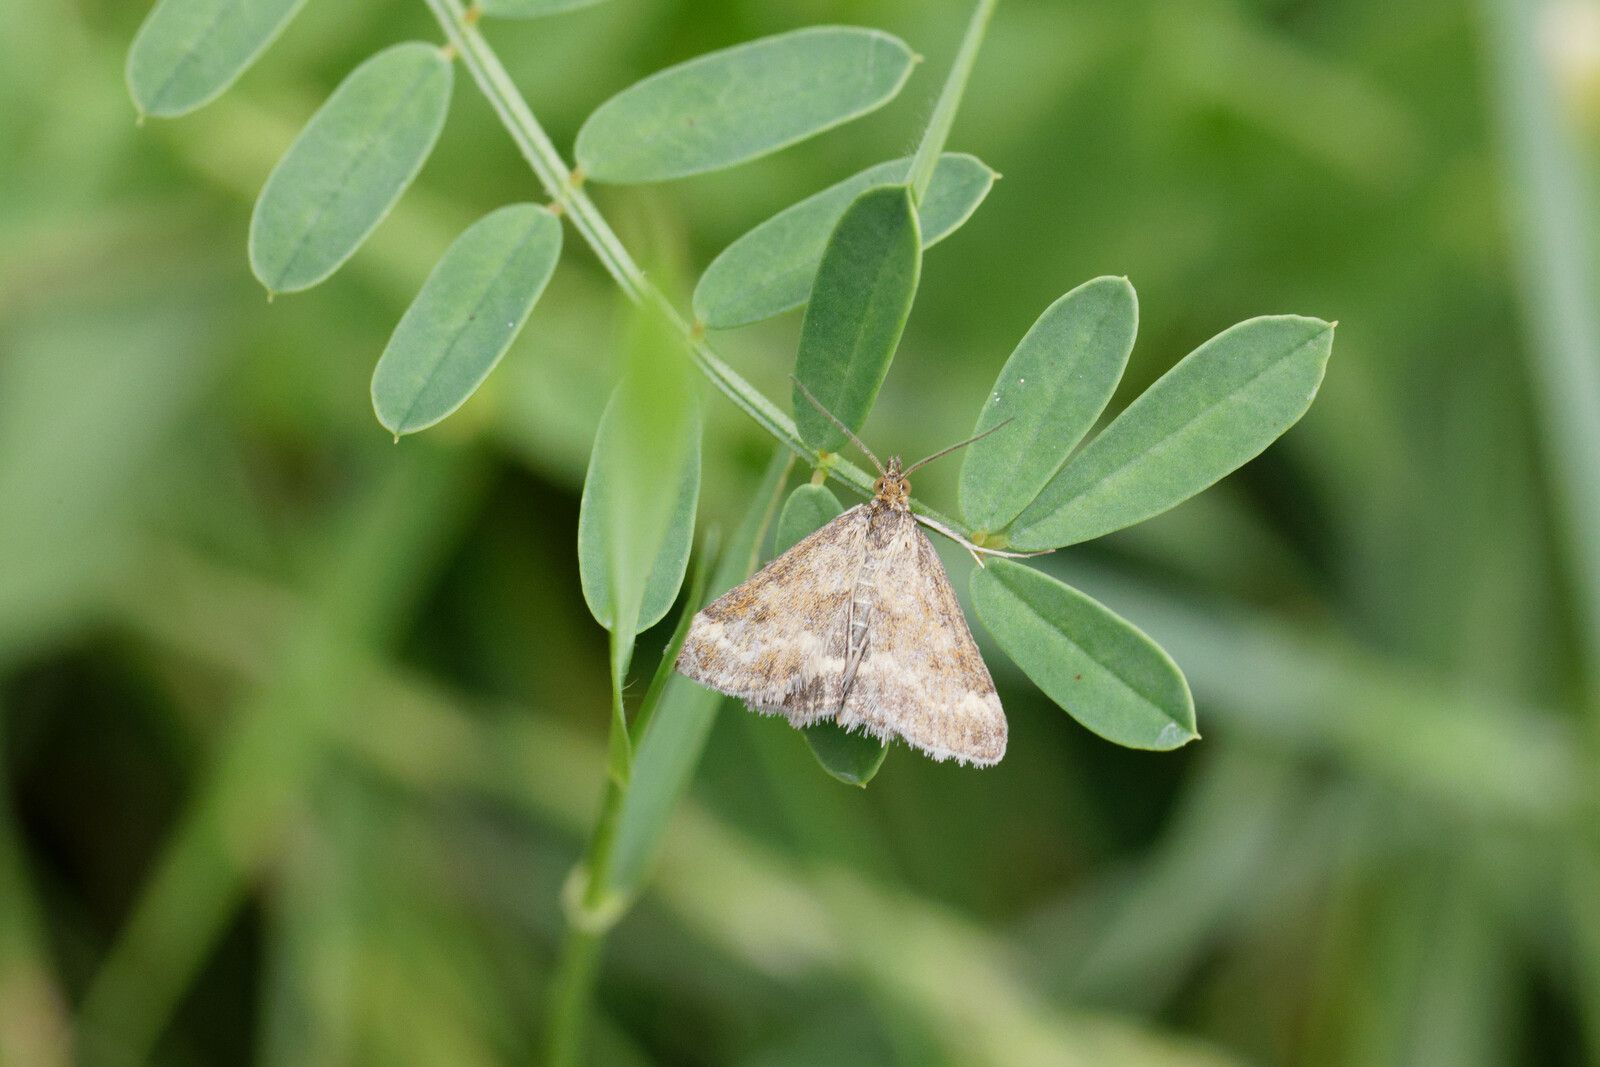 Pyrale sp